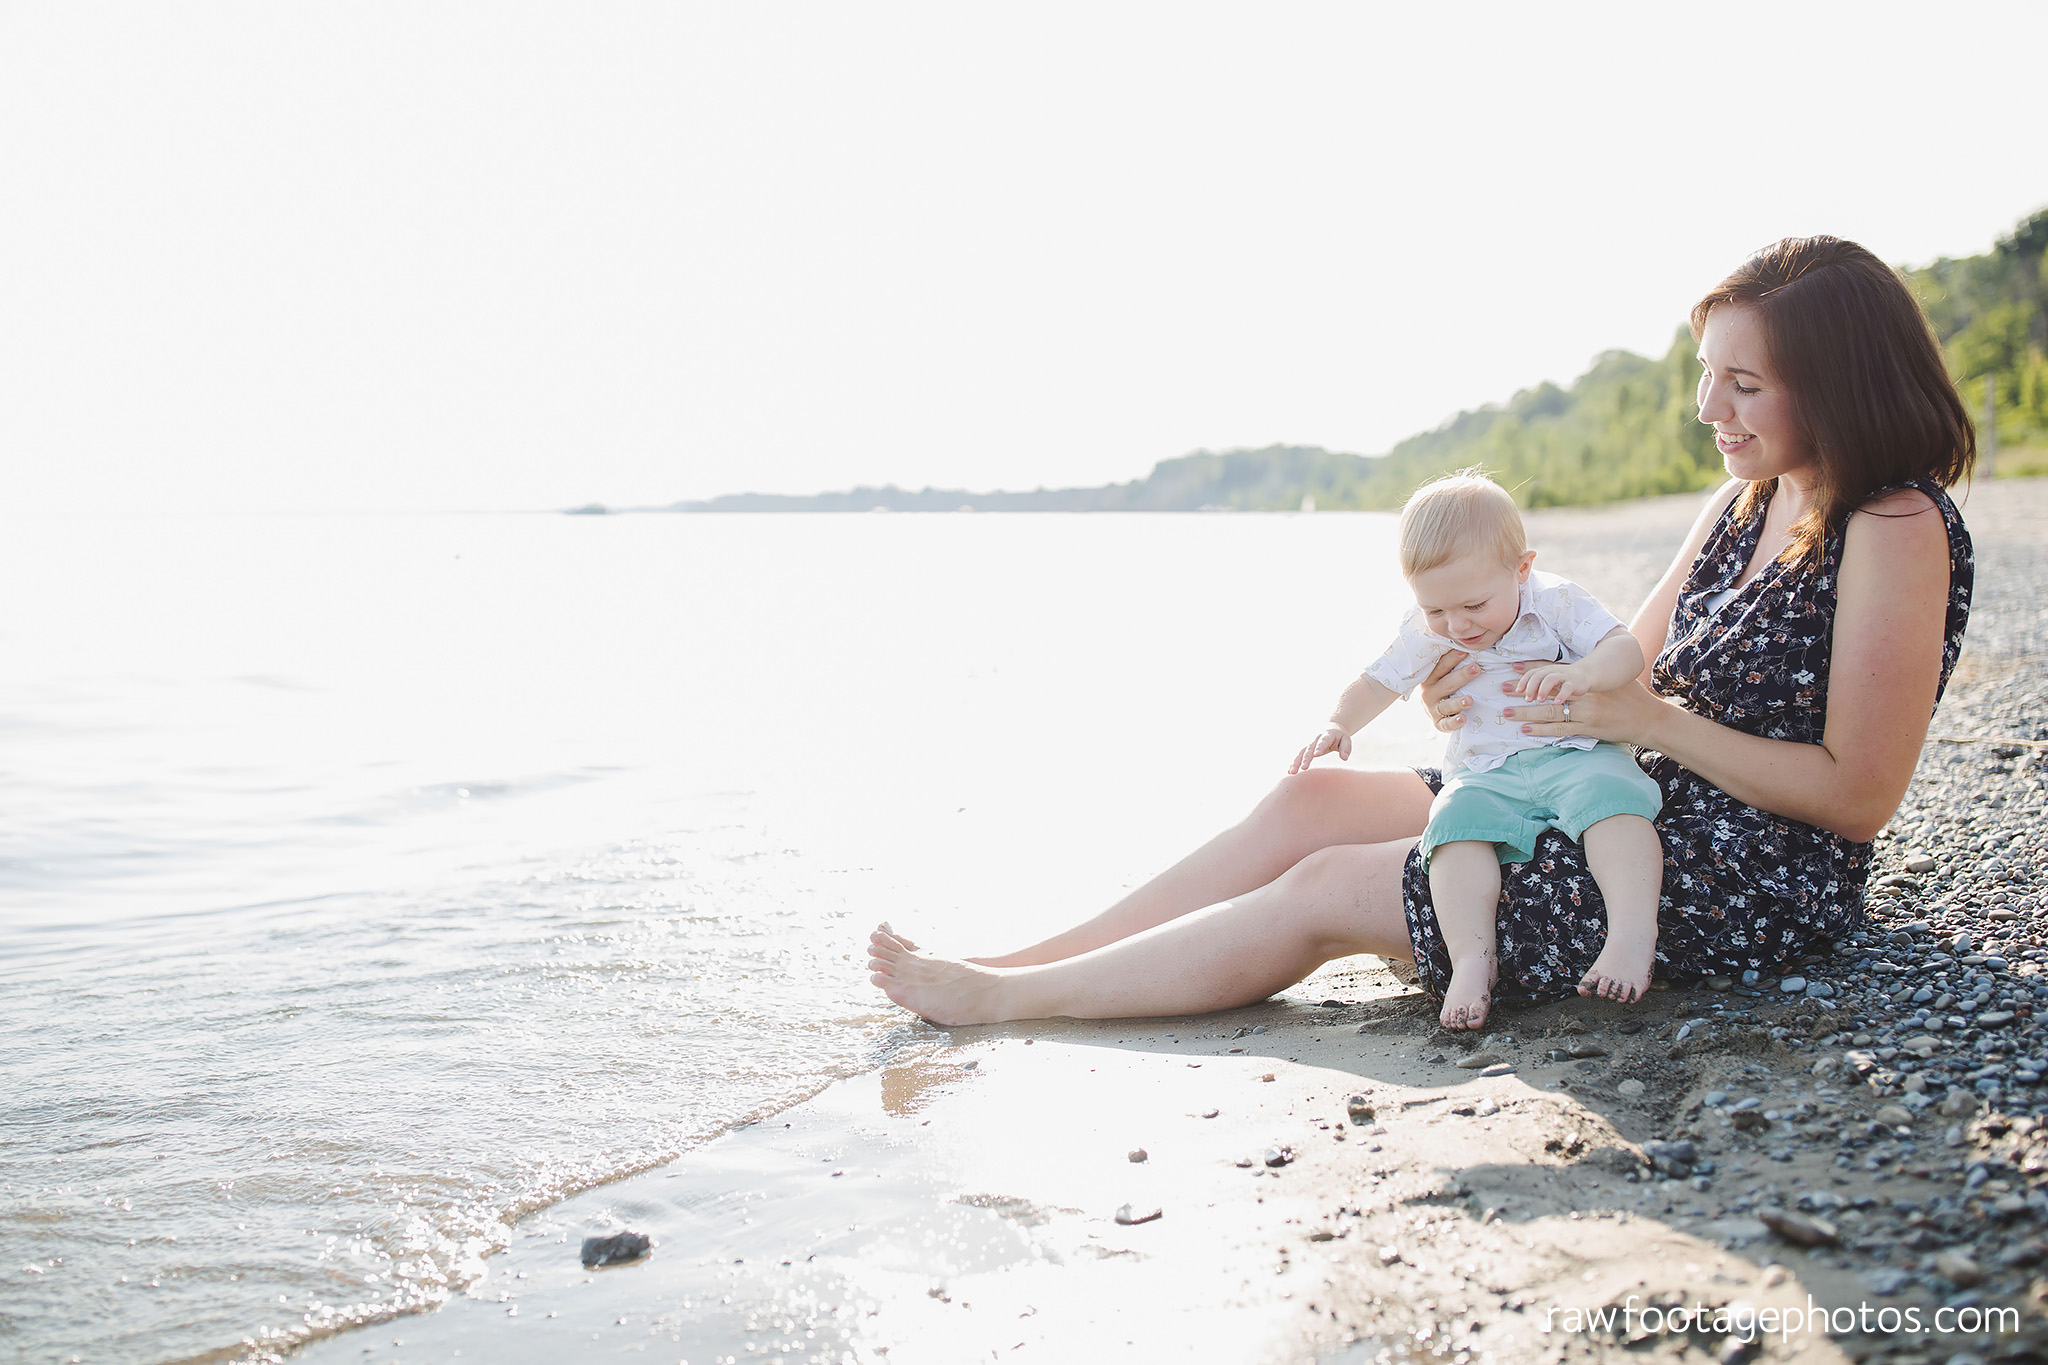 london_ontario_family_photographer-beach_minis-port_stanley_beach-raw_footage_photography007.jpg